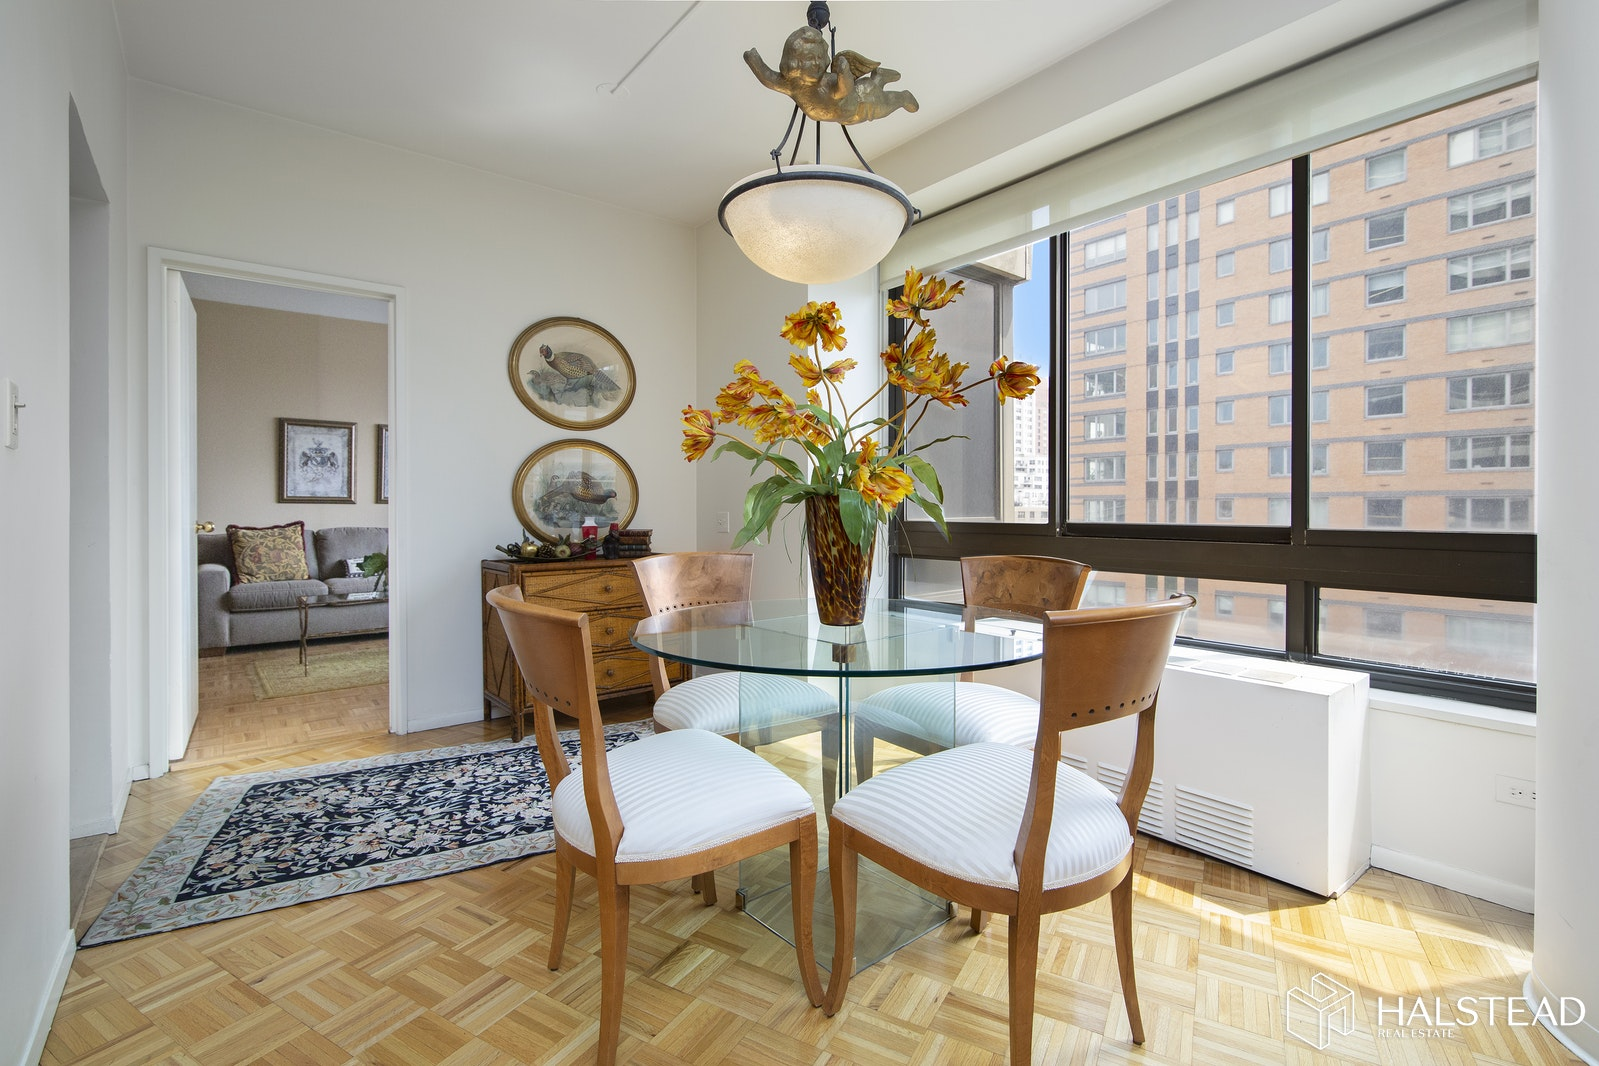 167 East 61st Street 15a, Upper East Side, NYC, 10065, $2,200,000, Property For Sale, Halstead Real Estate, Photo 3